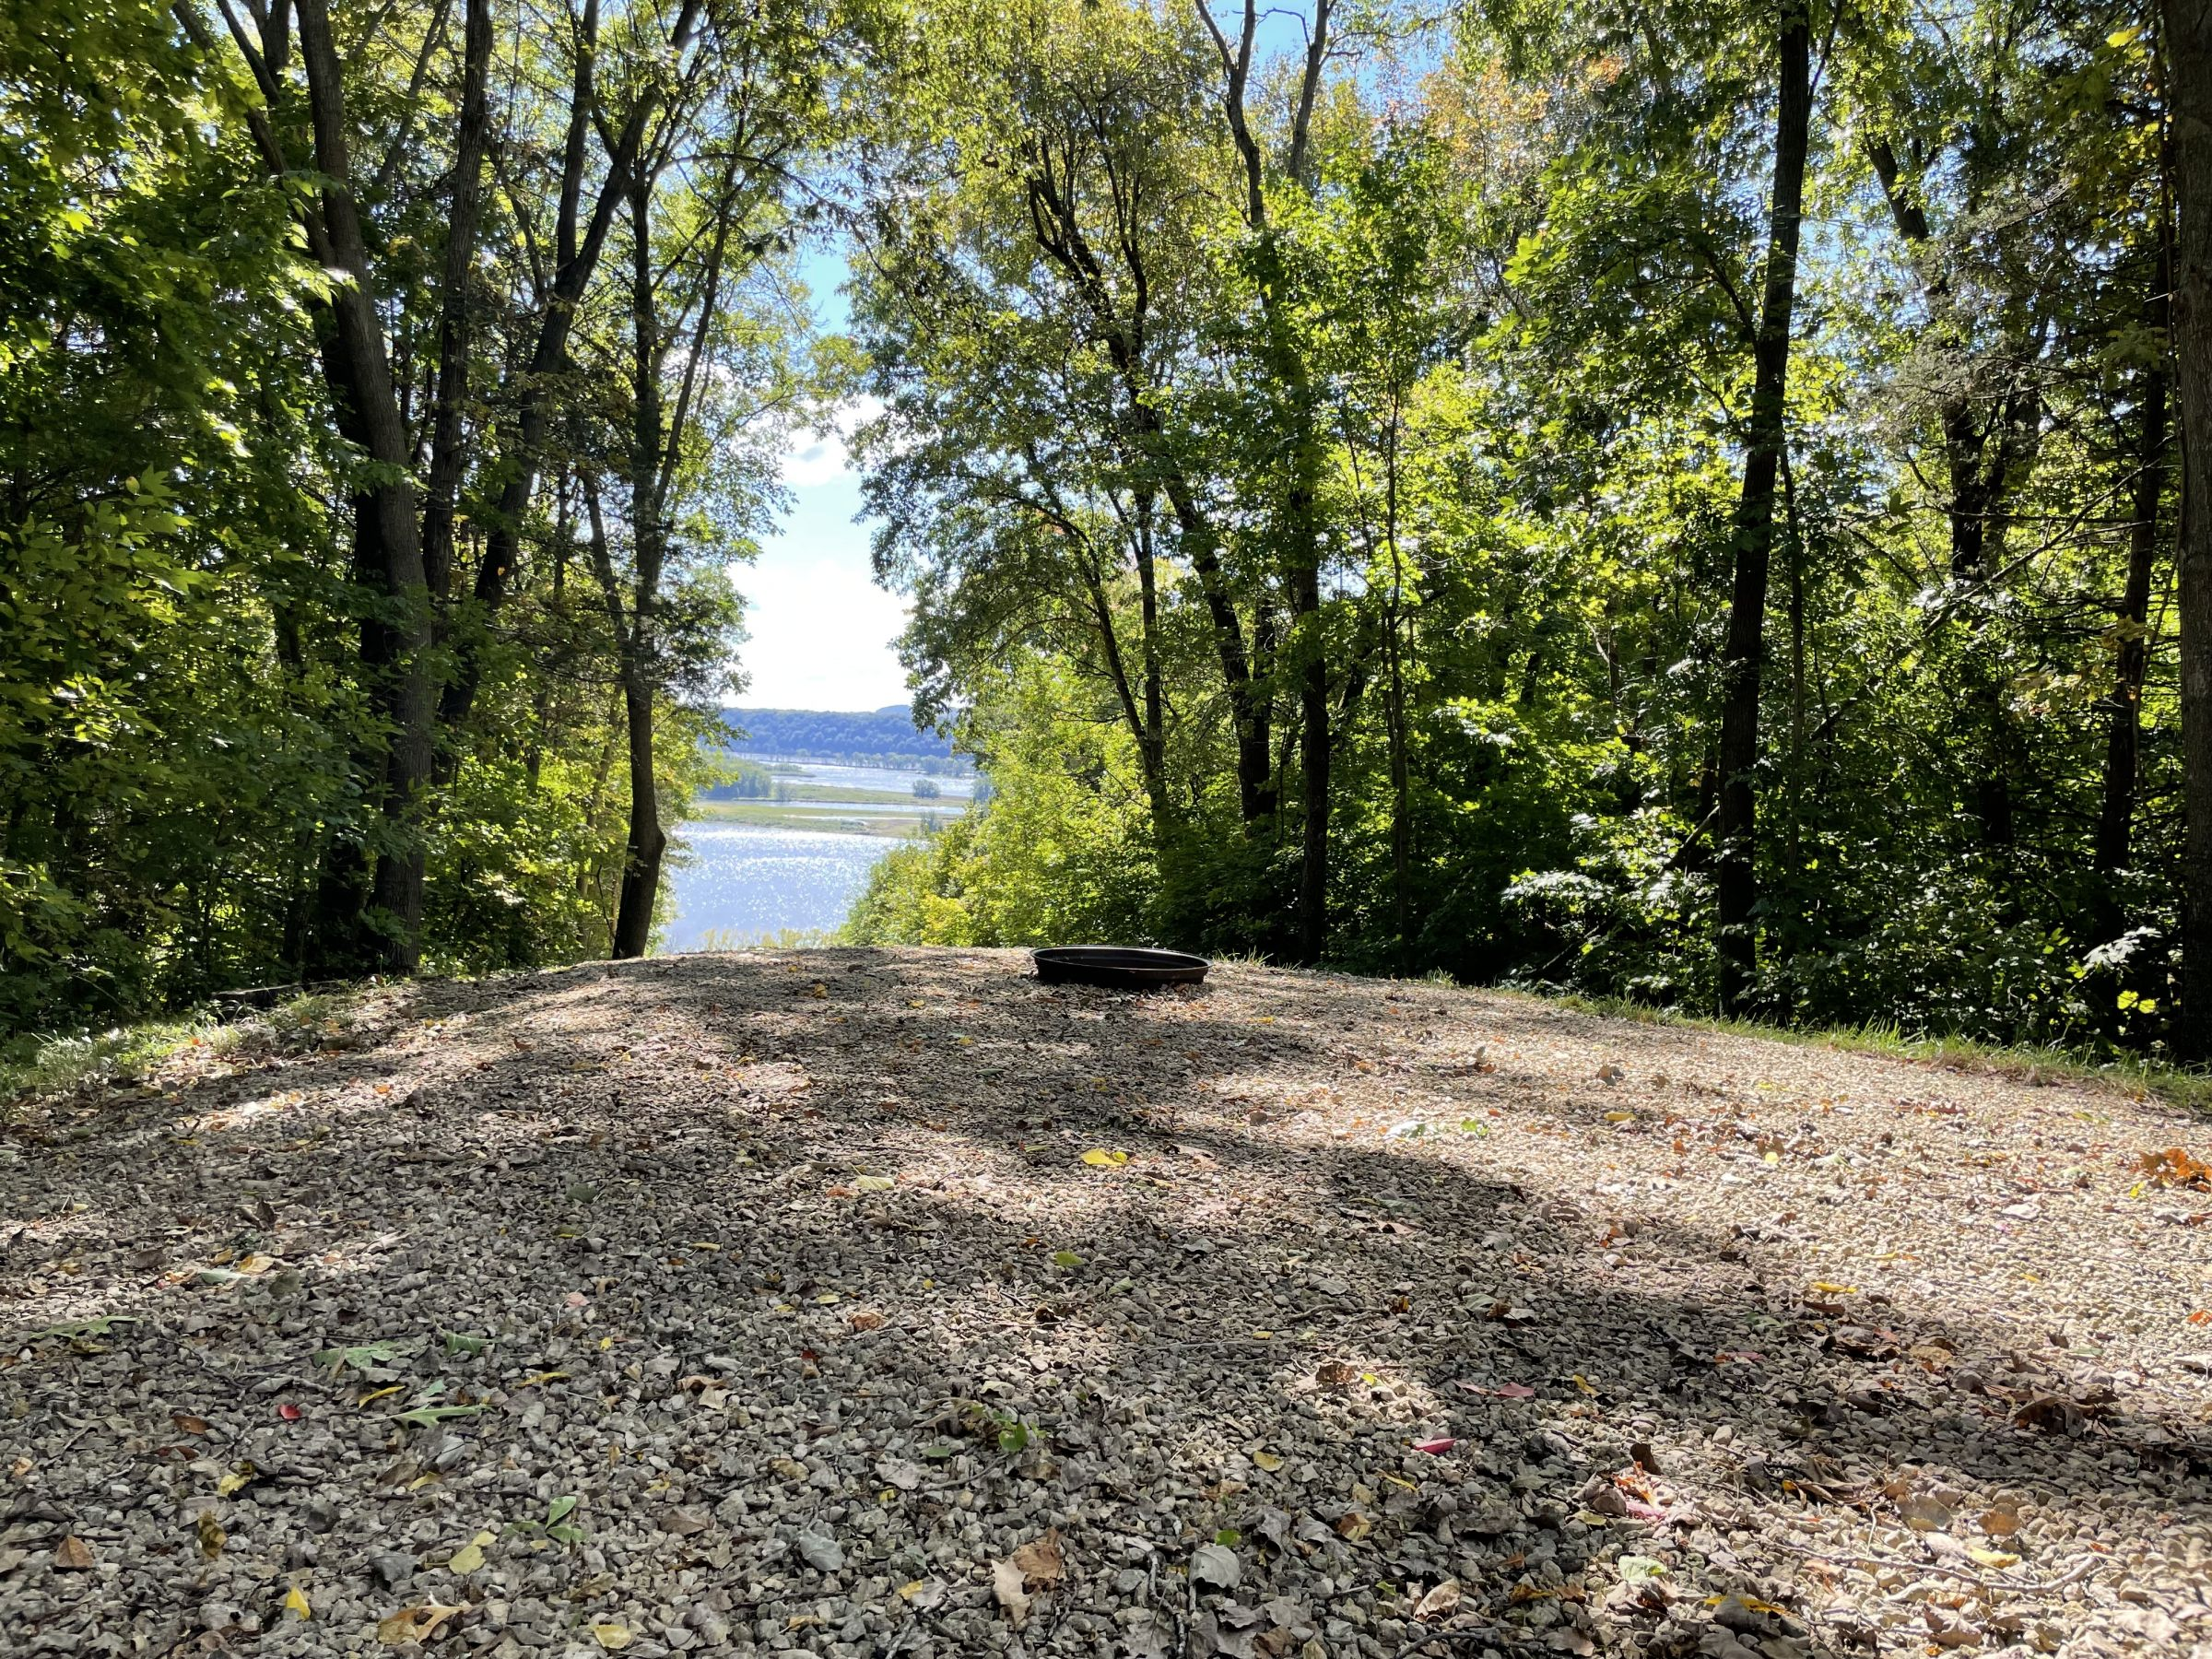 land-grant-county-wisconsin-4-acres-listing-number-15772-2-2021-09-23-020212.JPG